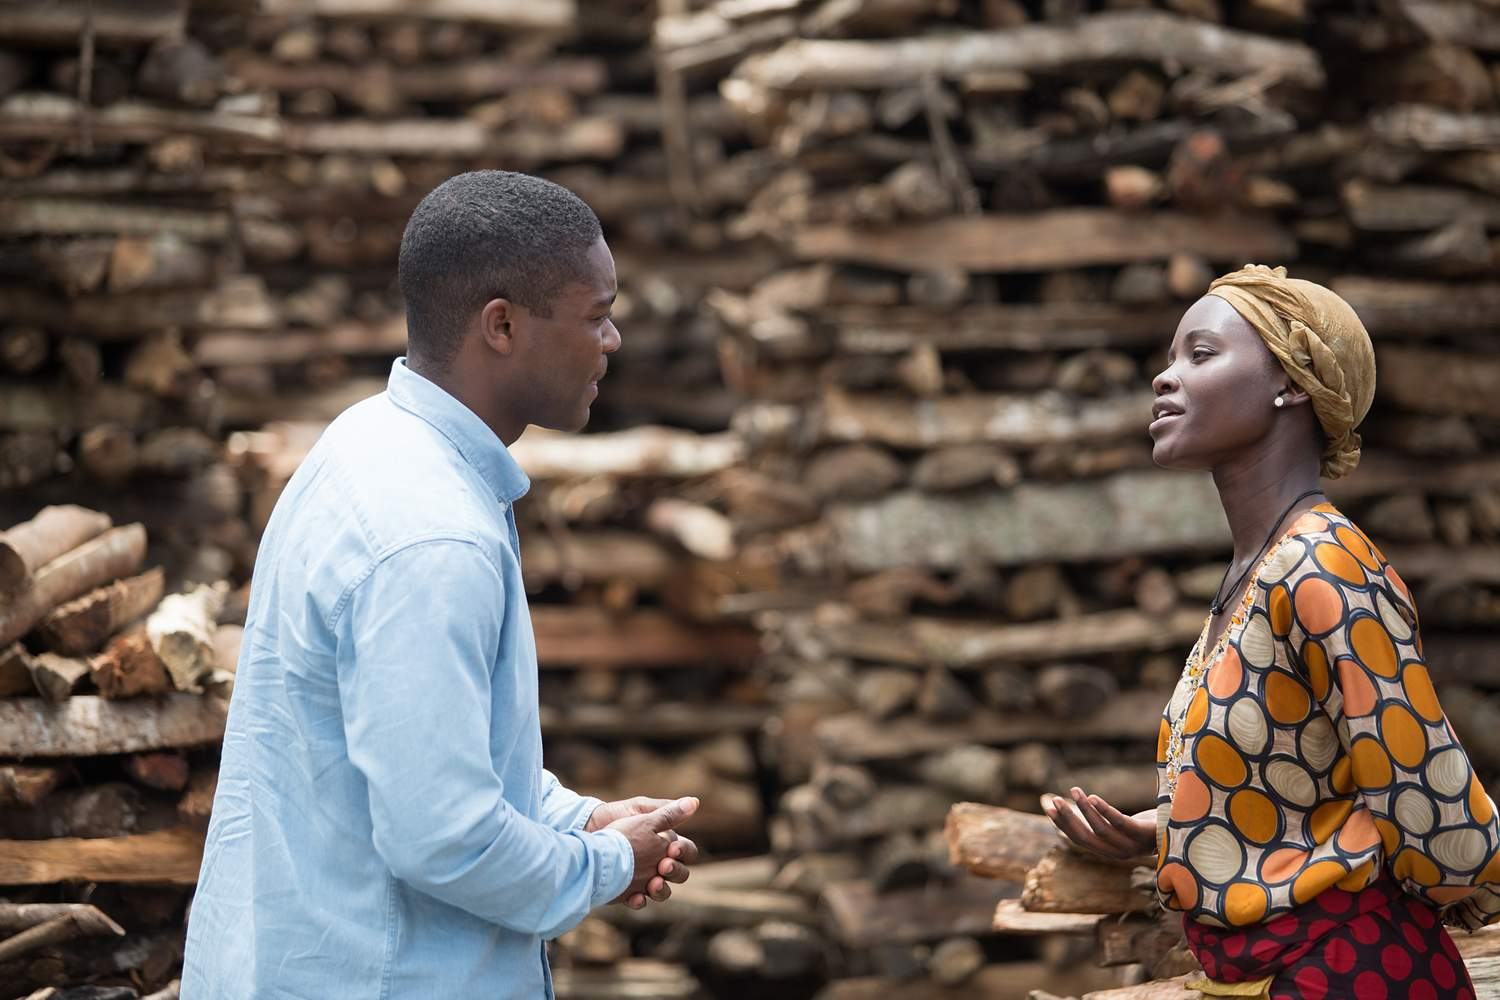 David Oyelowo plays the missionary who changes the life of Phiona, her mother, Lupita Nyong'o.